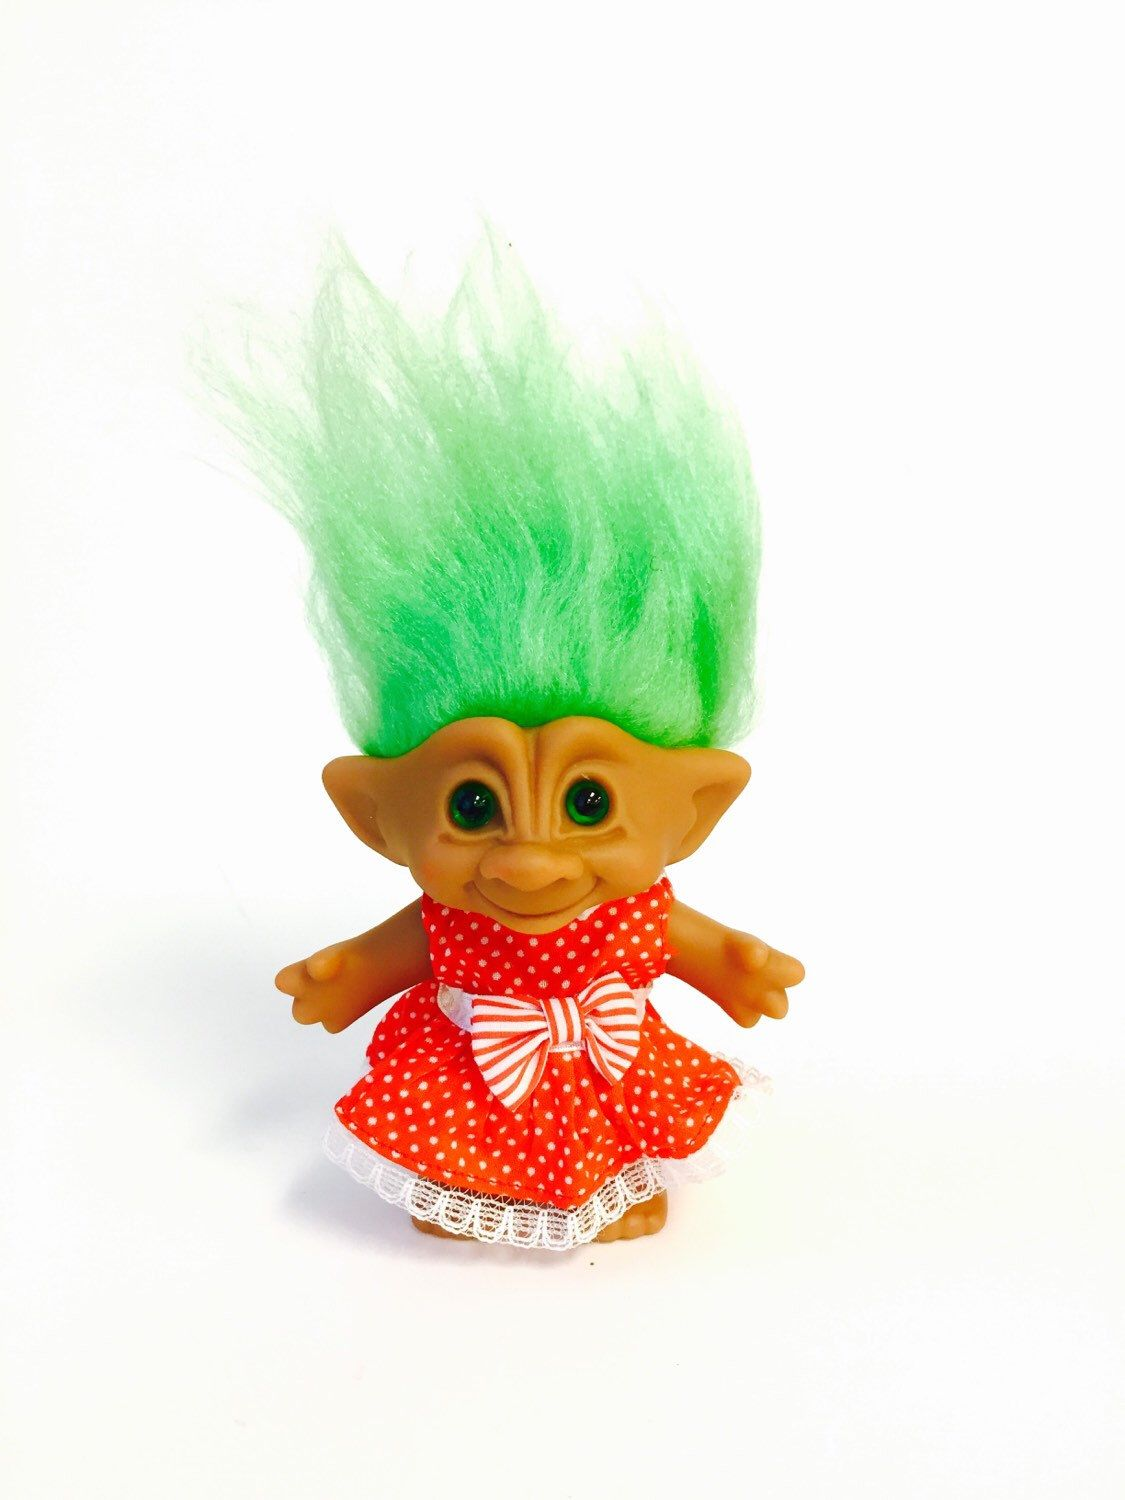 Vintage 80s Troll Doll Neon Green Hair Gem Red And White Polka Dot